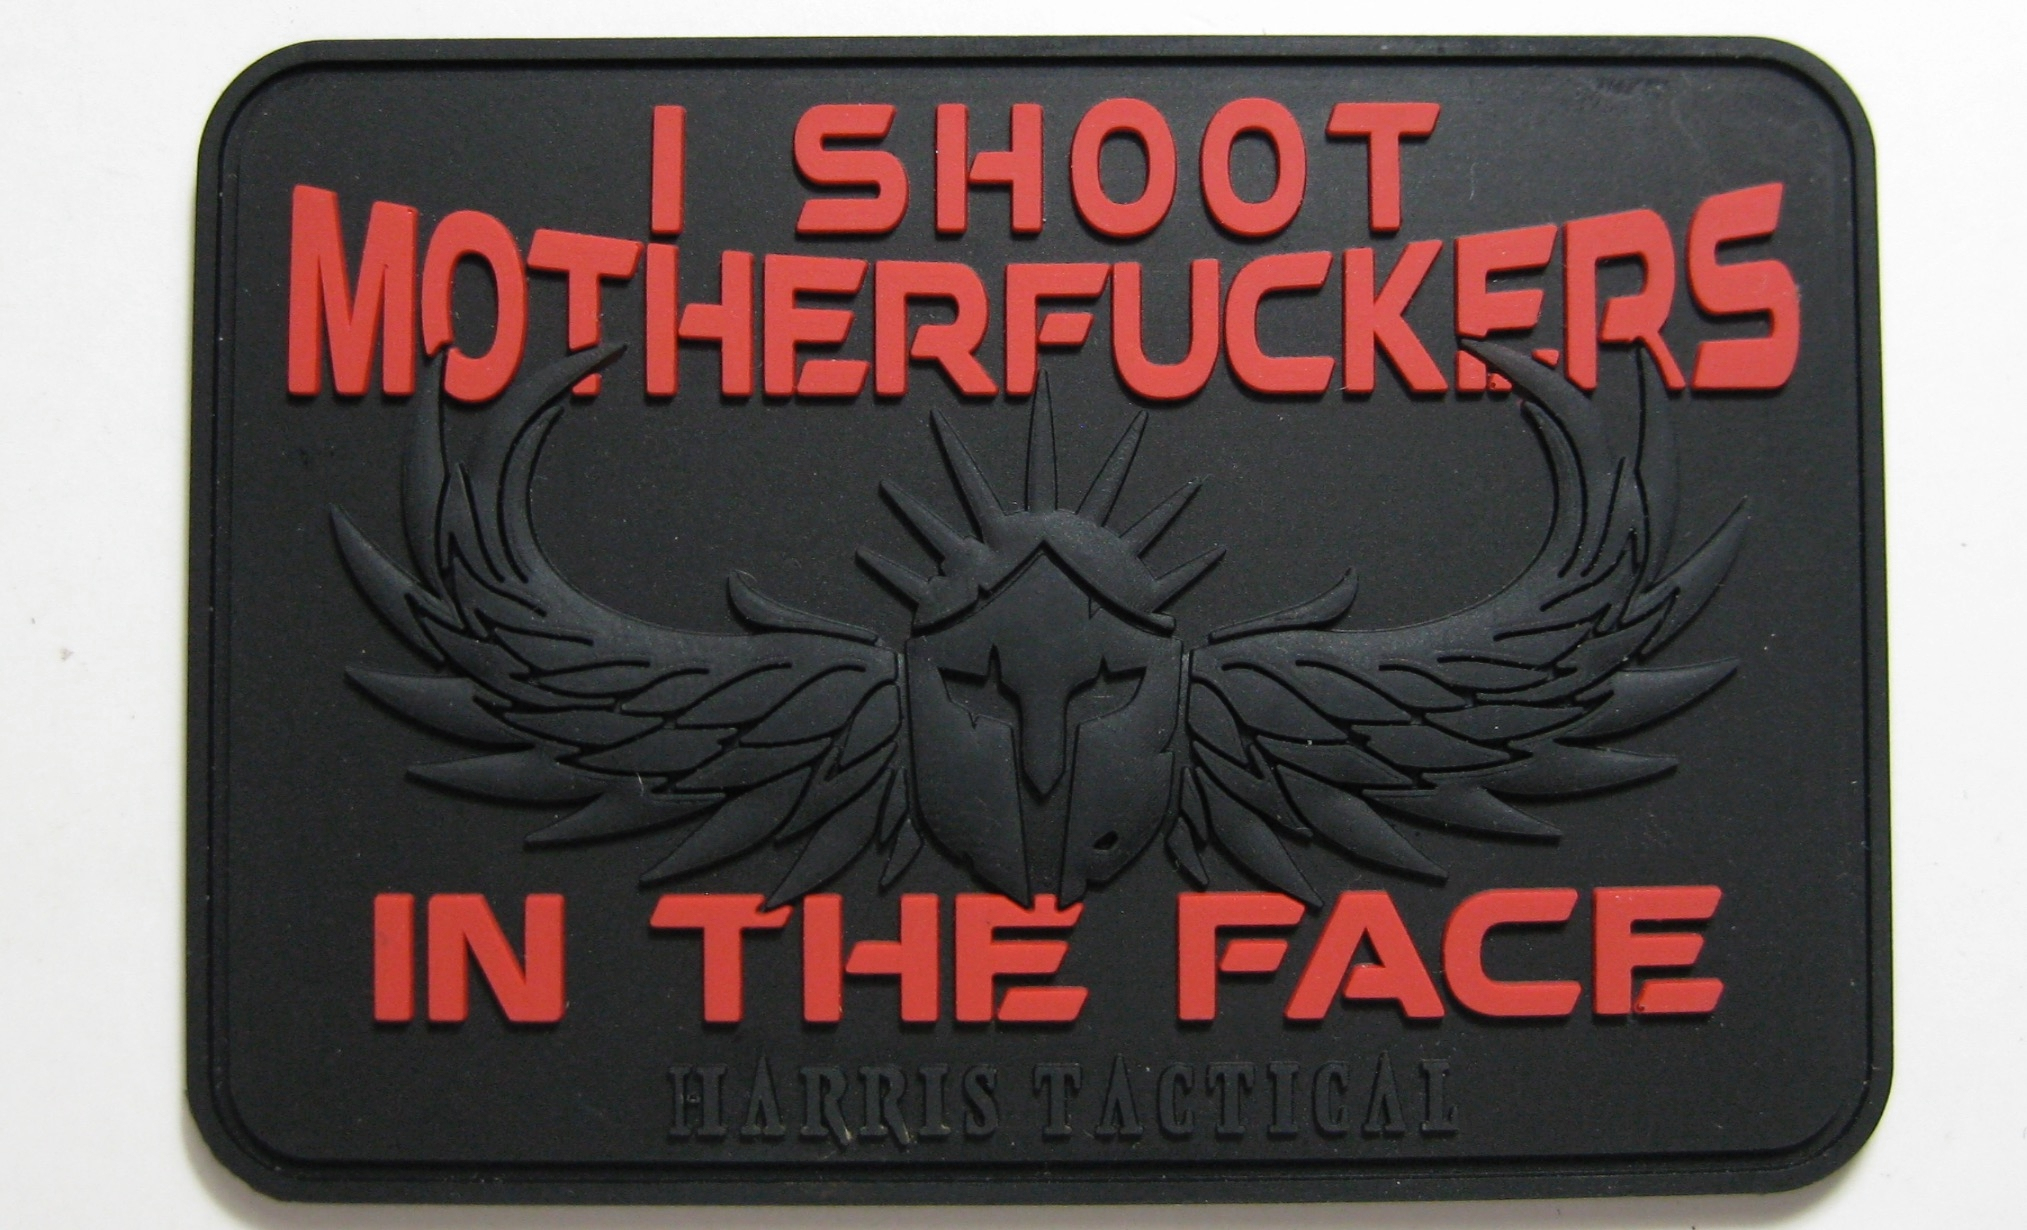 I Shoot MF'ers In The Face PVC Patch in Black and Red (Limited)